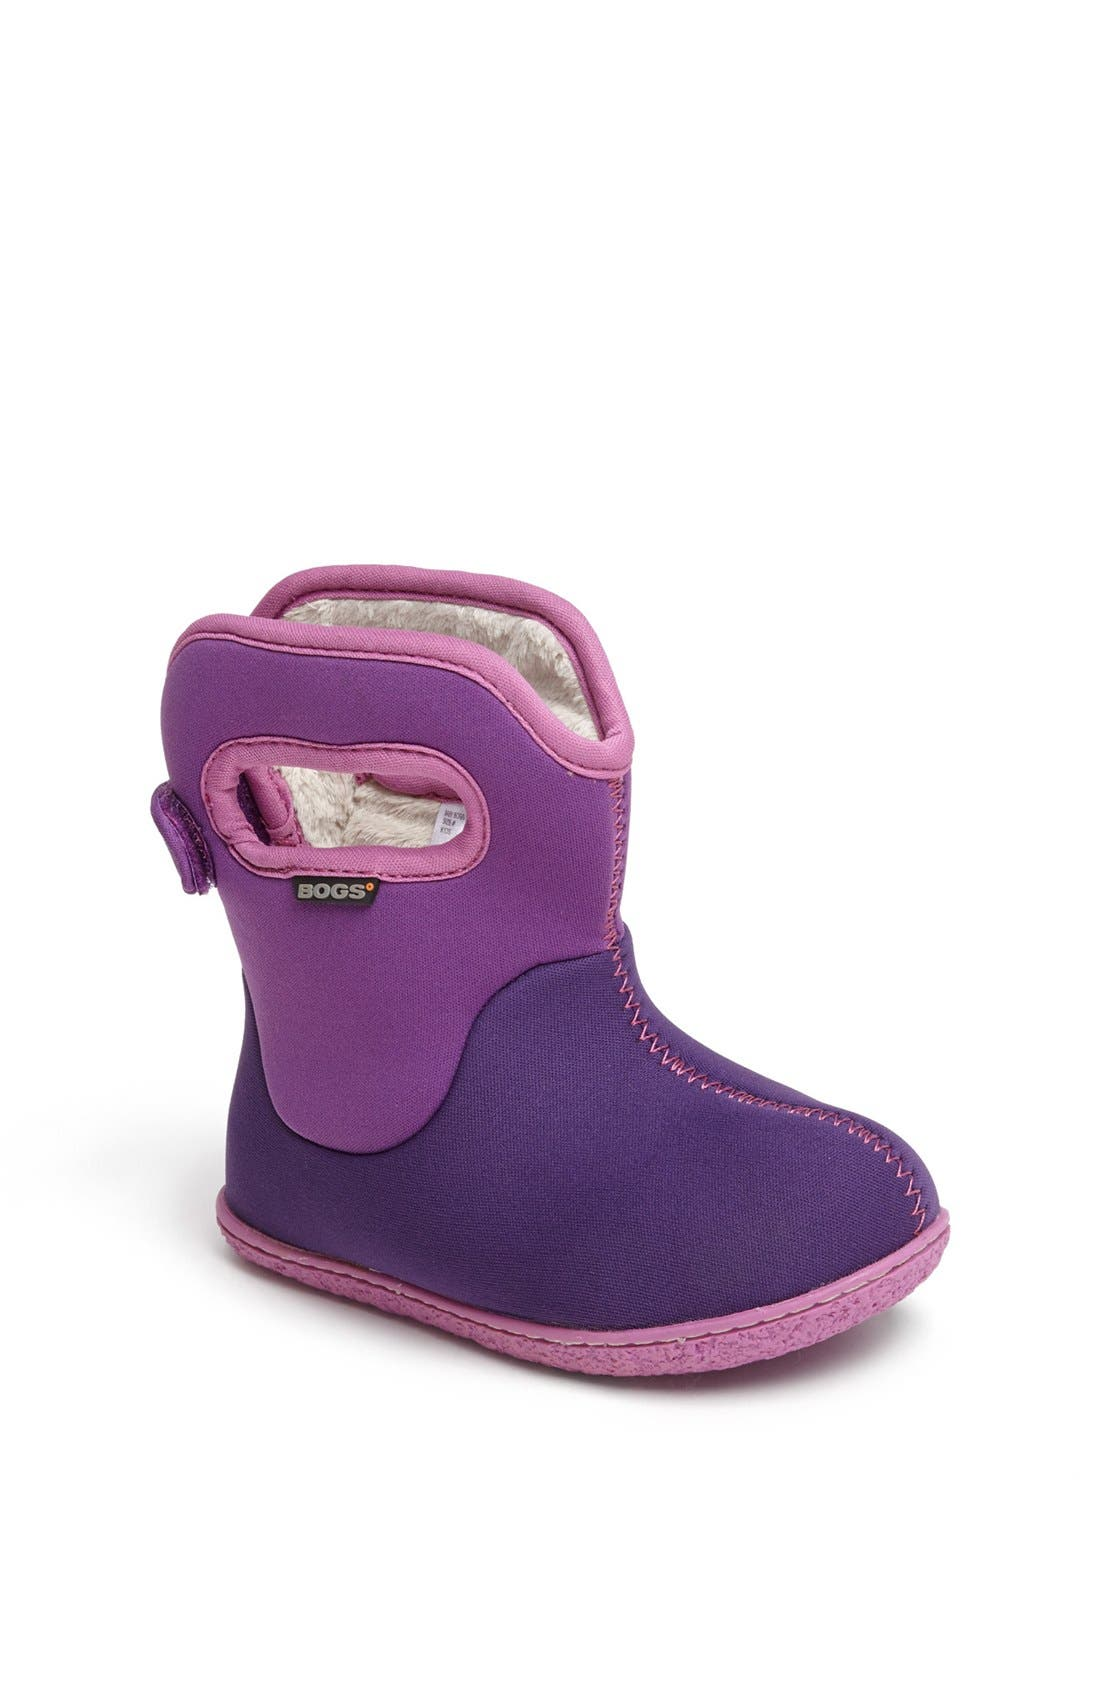 Alternate Image 1 Selected - Bogs 'Baby Bogs' Waterproof Boot (Baby, Walker & Toddler)